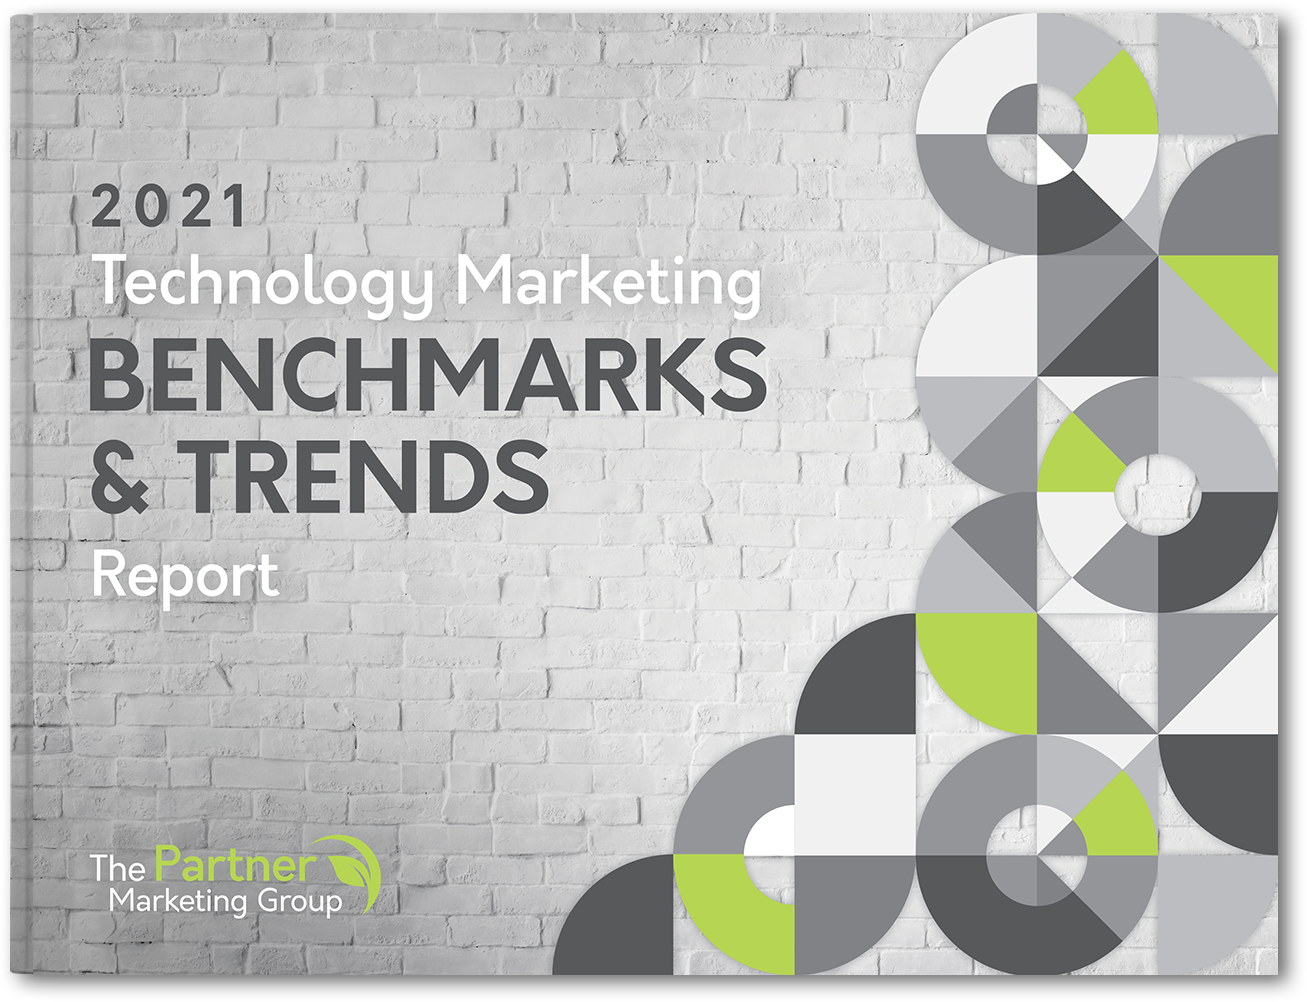 Download the 2021 Technology Marketing Benchmarks Report